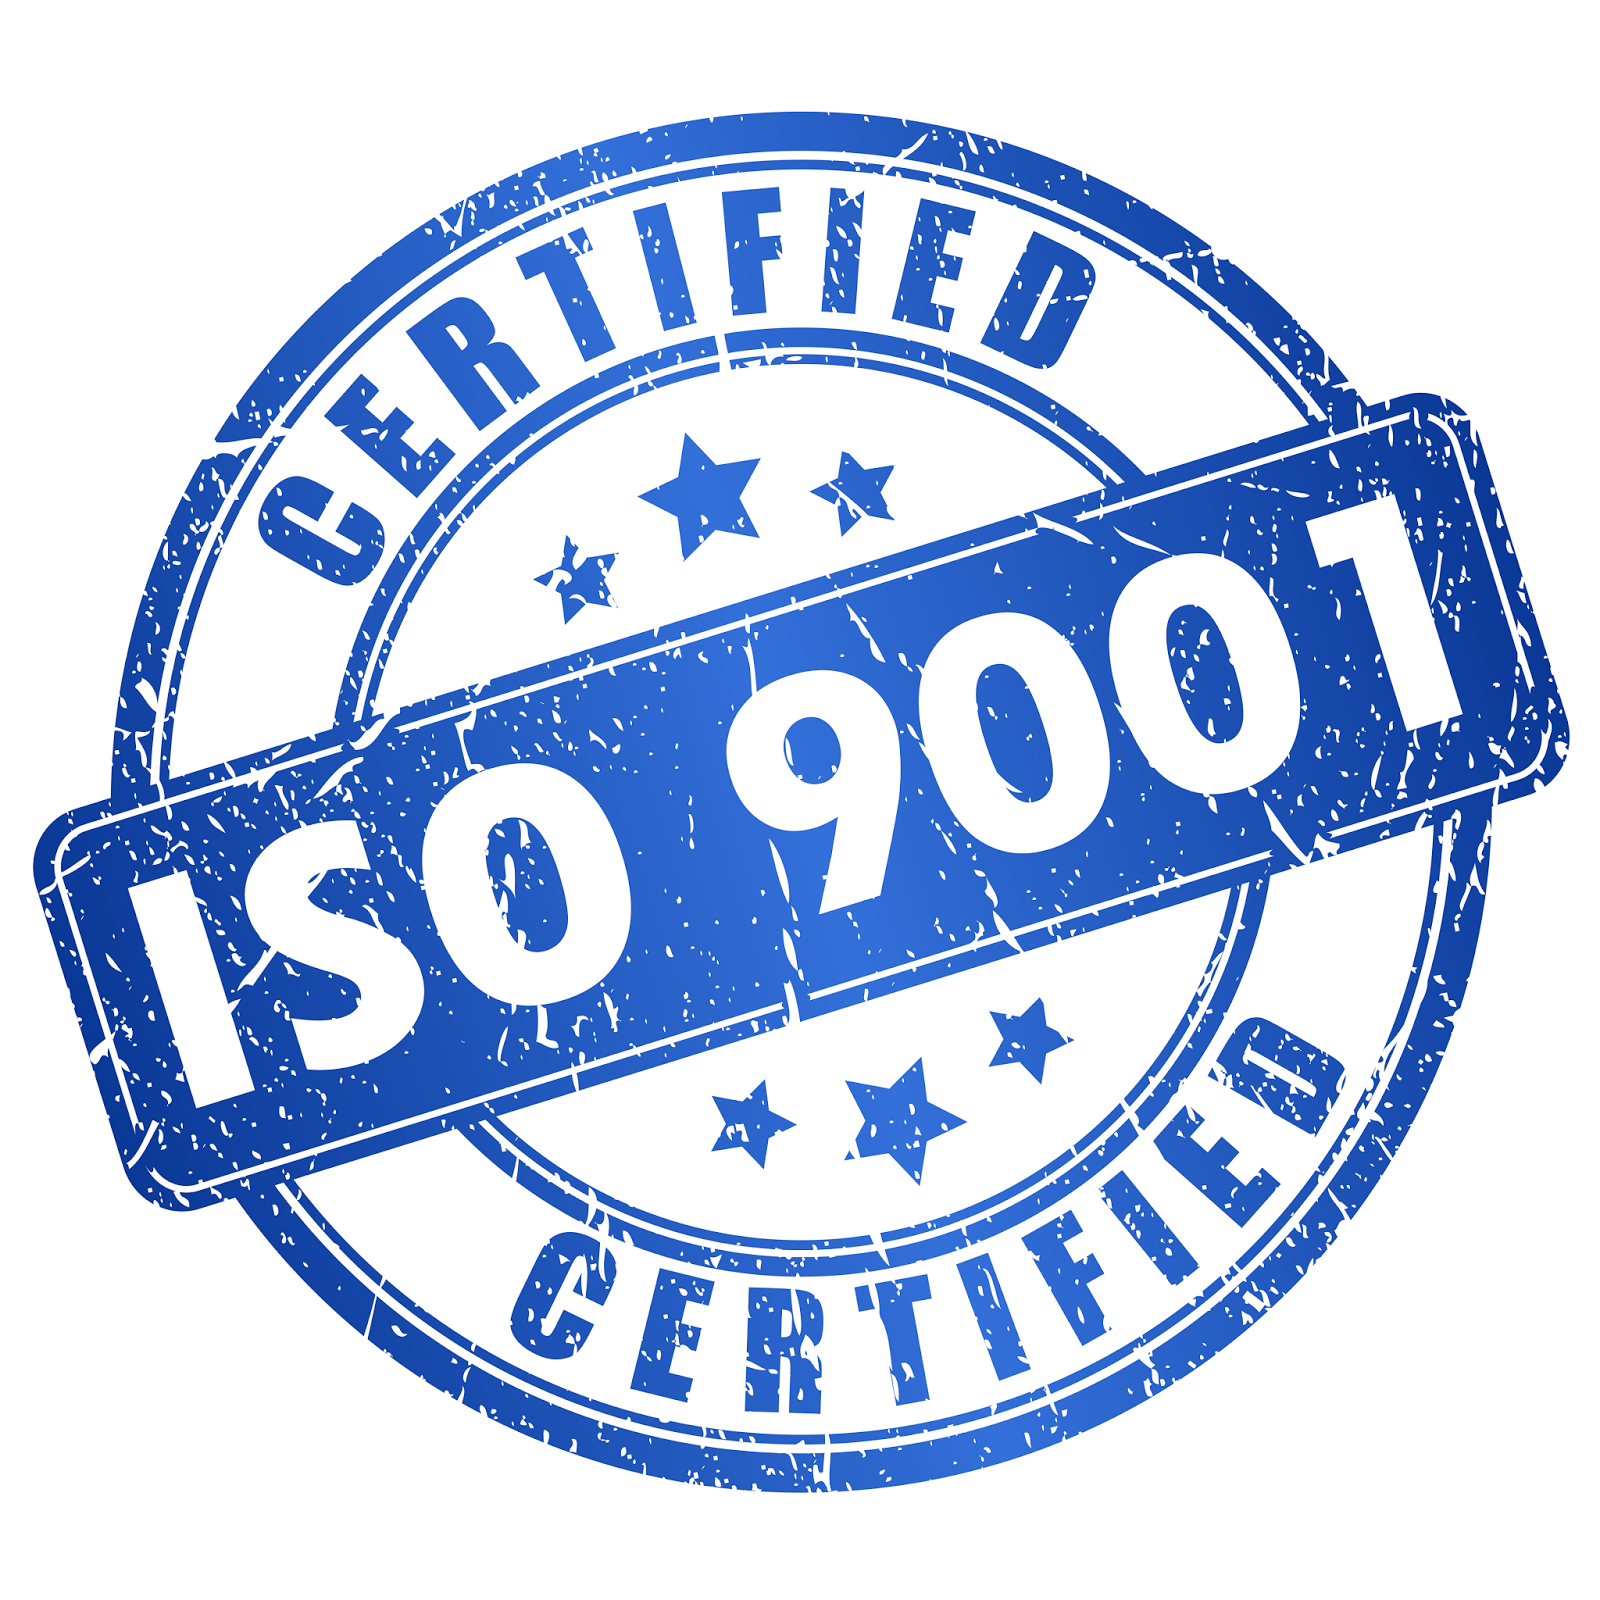 Renewal of the ISO 9001 Certification in January 2016